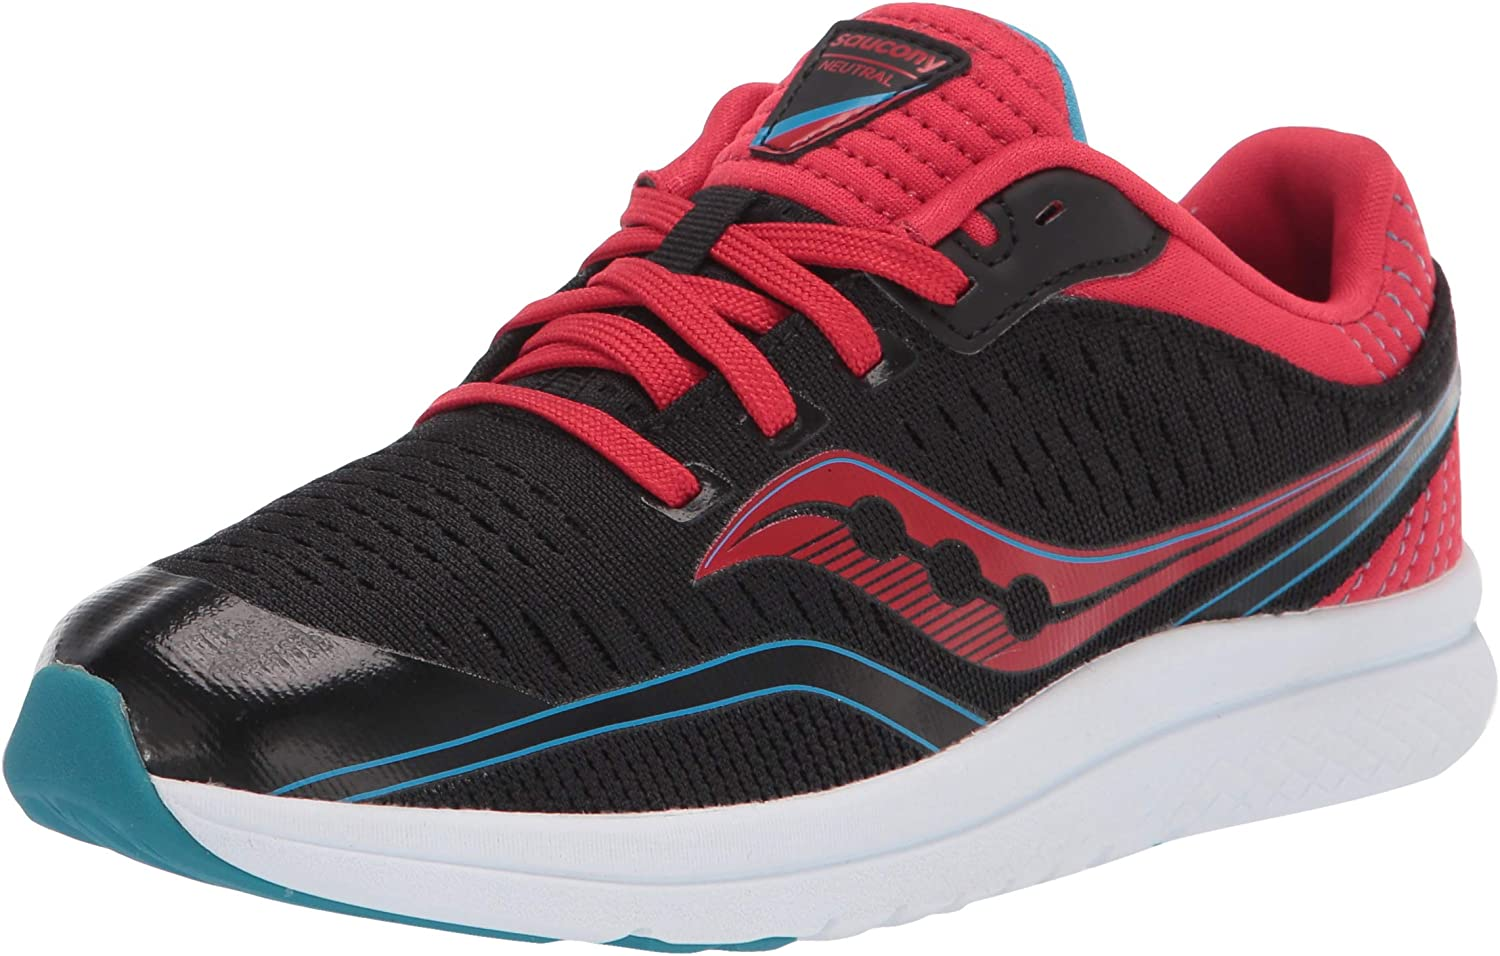 Saucony Free shipping anywhere in the nation Kinvara 11 Sale price Kids Sneaker